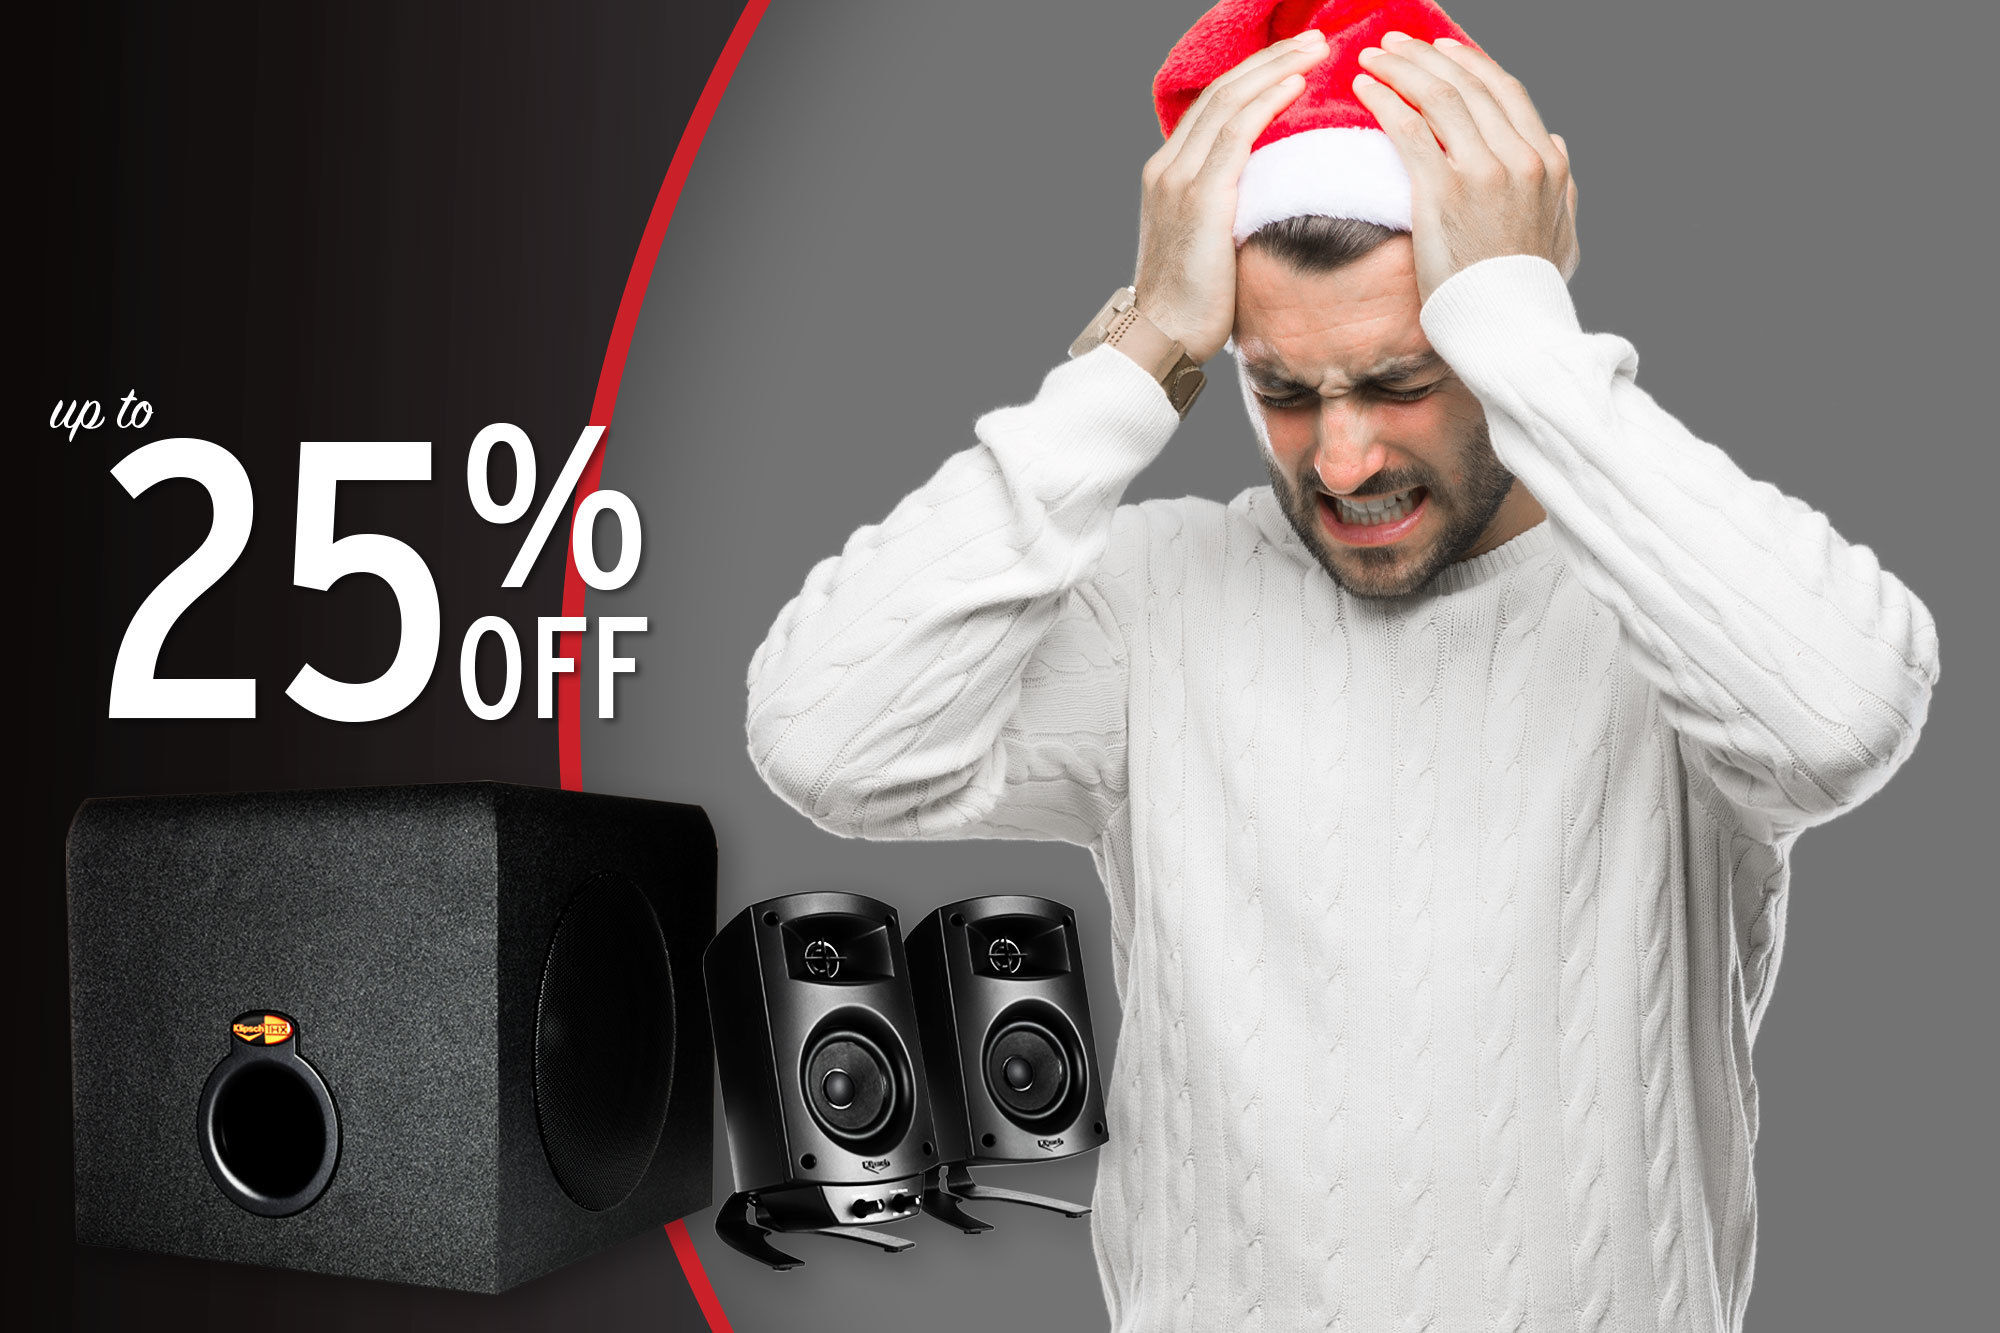 Man upset he didnt get Klipsch speakers for the holidays with ProMedia 2.1